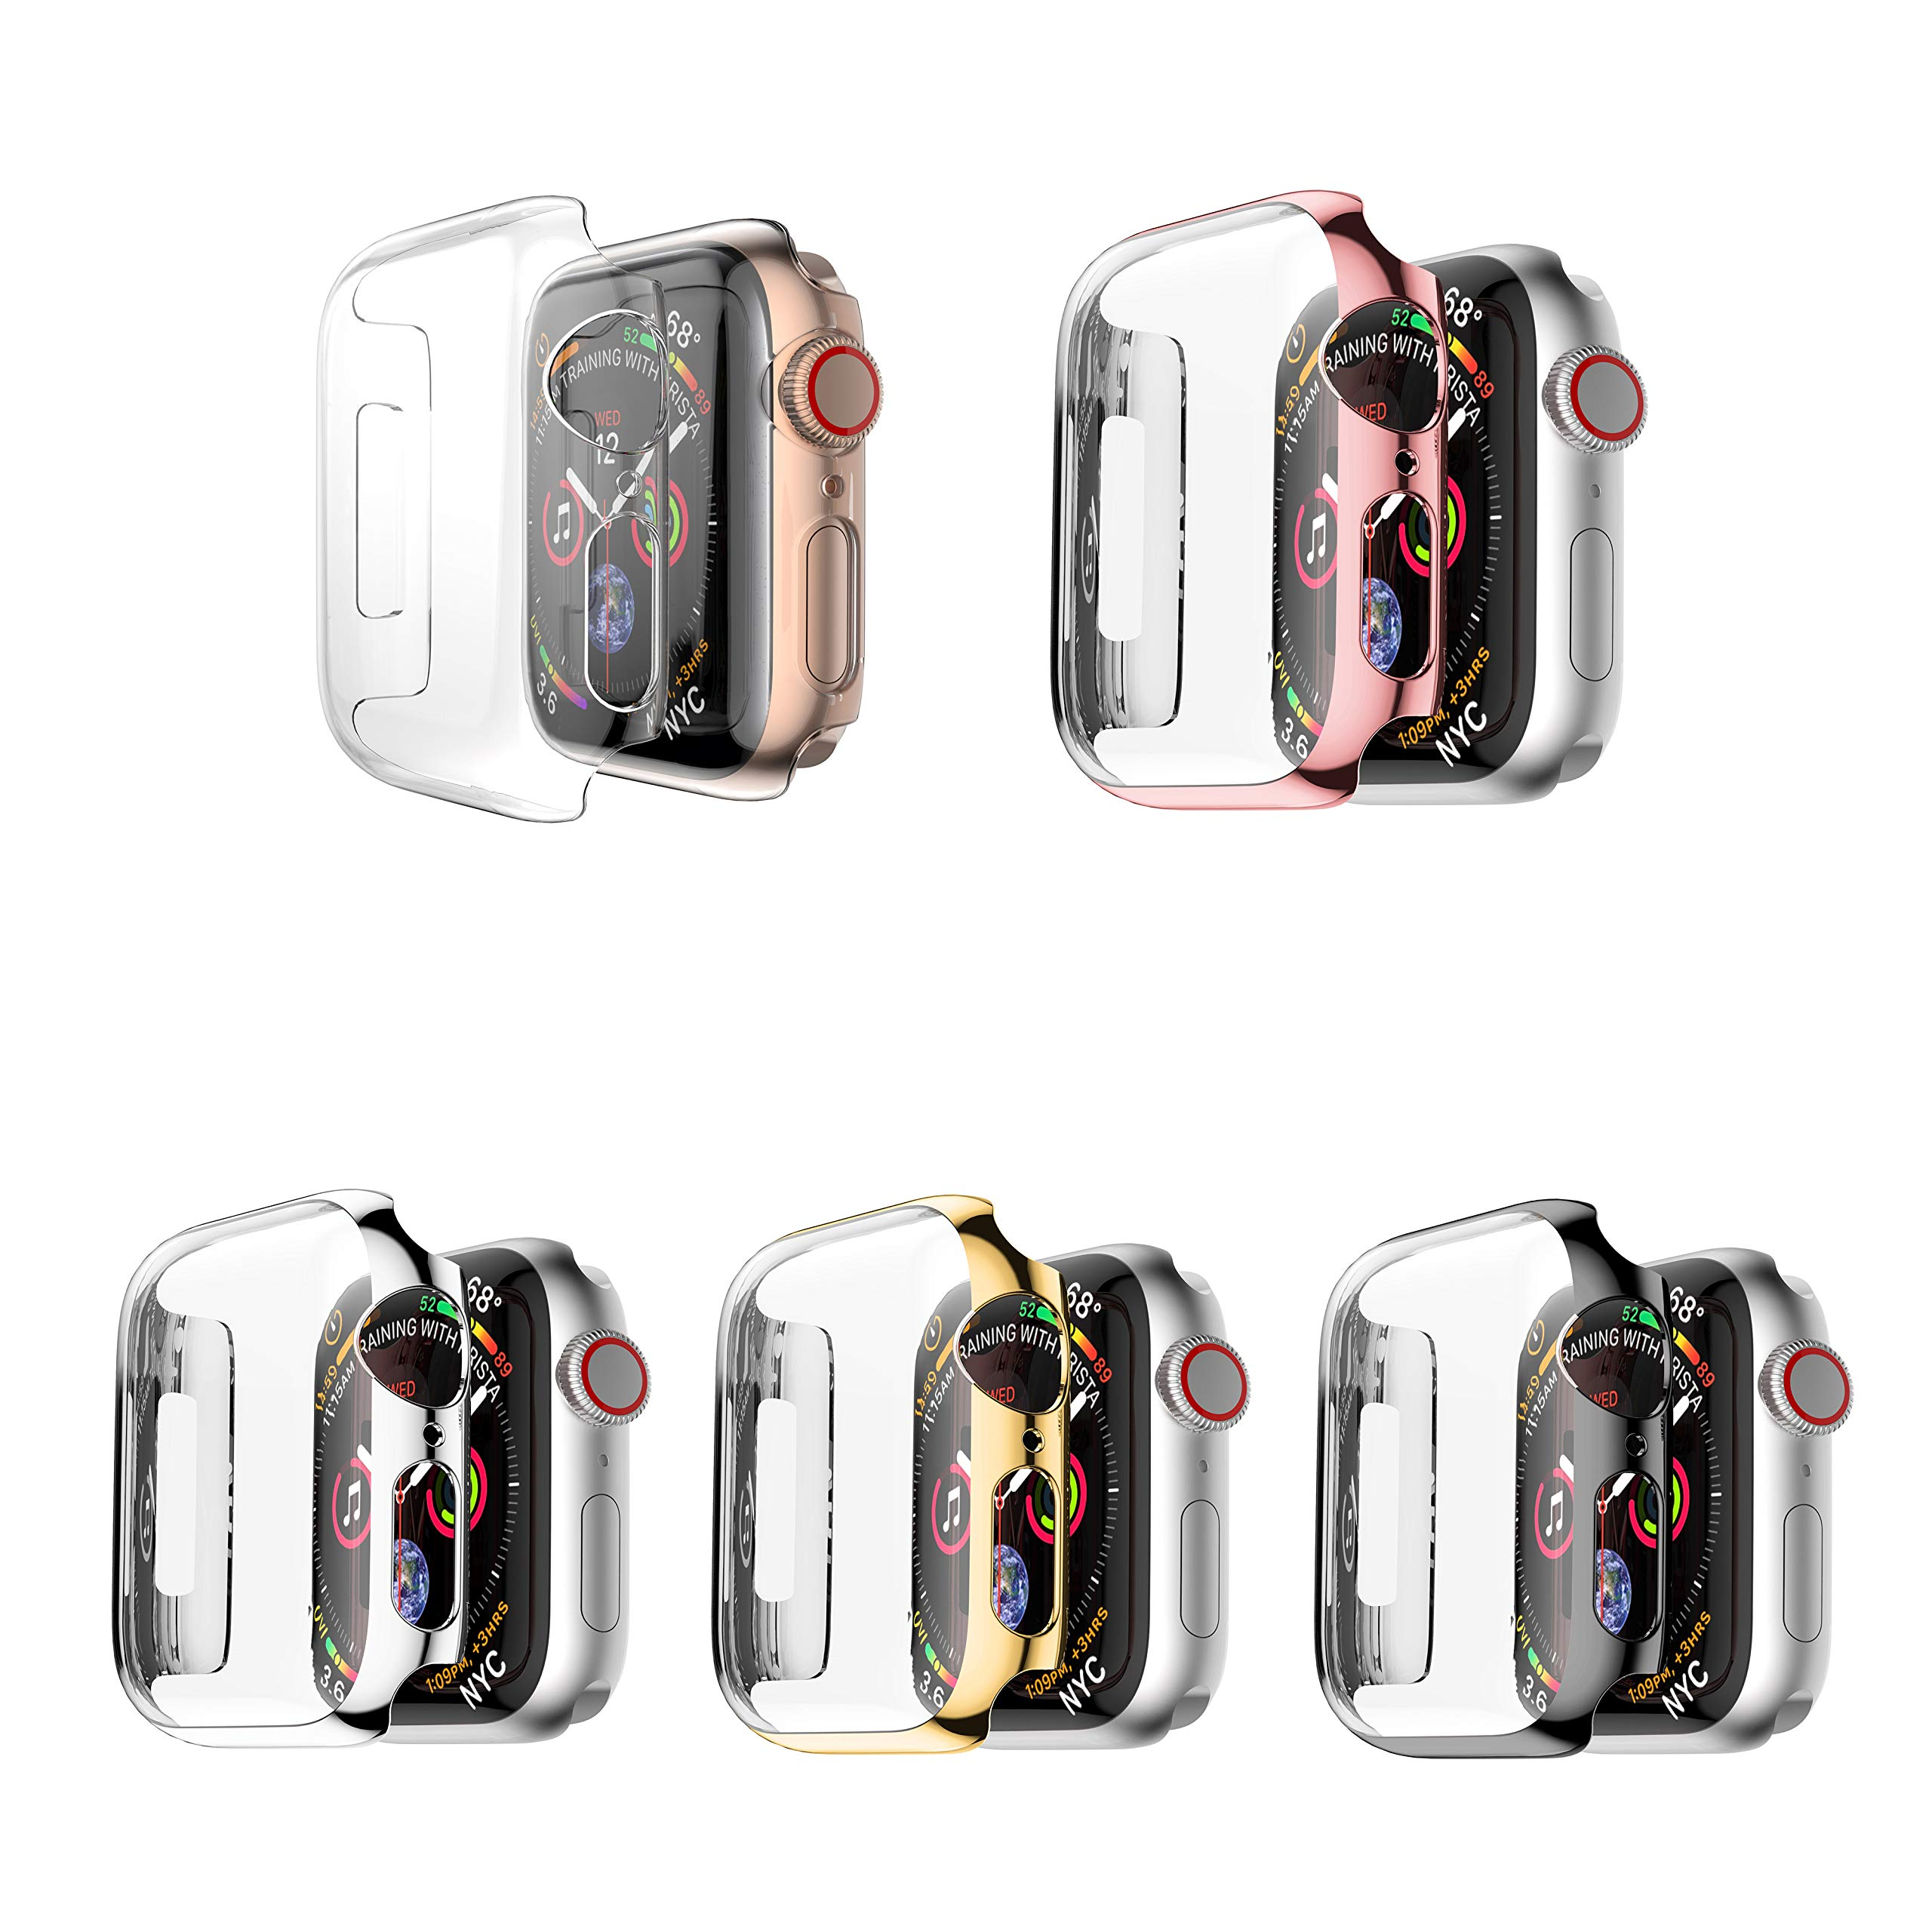 Leotop Compatible with Apple Watch Case 44mm 40mm, Super Thin PC Plated Bumper Clear Screen Protector Full Cover Shell Shockproof Frame Compatible iWatch Series 4 (5 Color Pack, 44mm) by Leotop